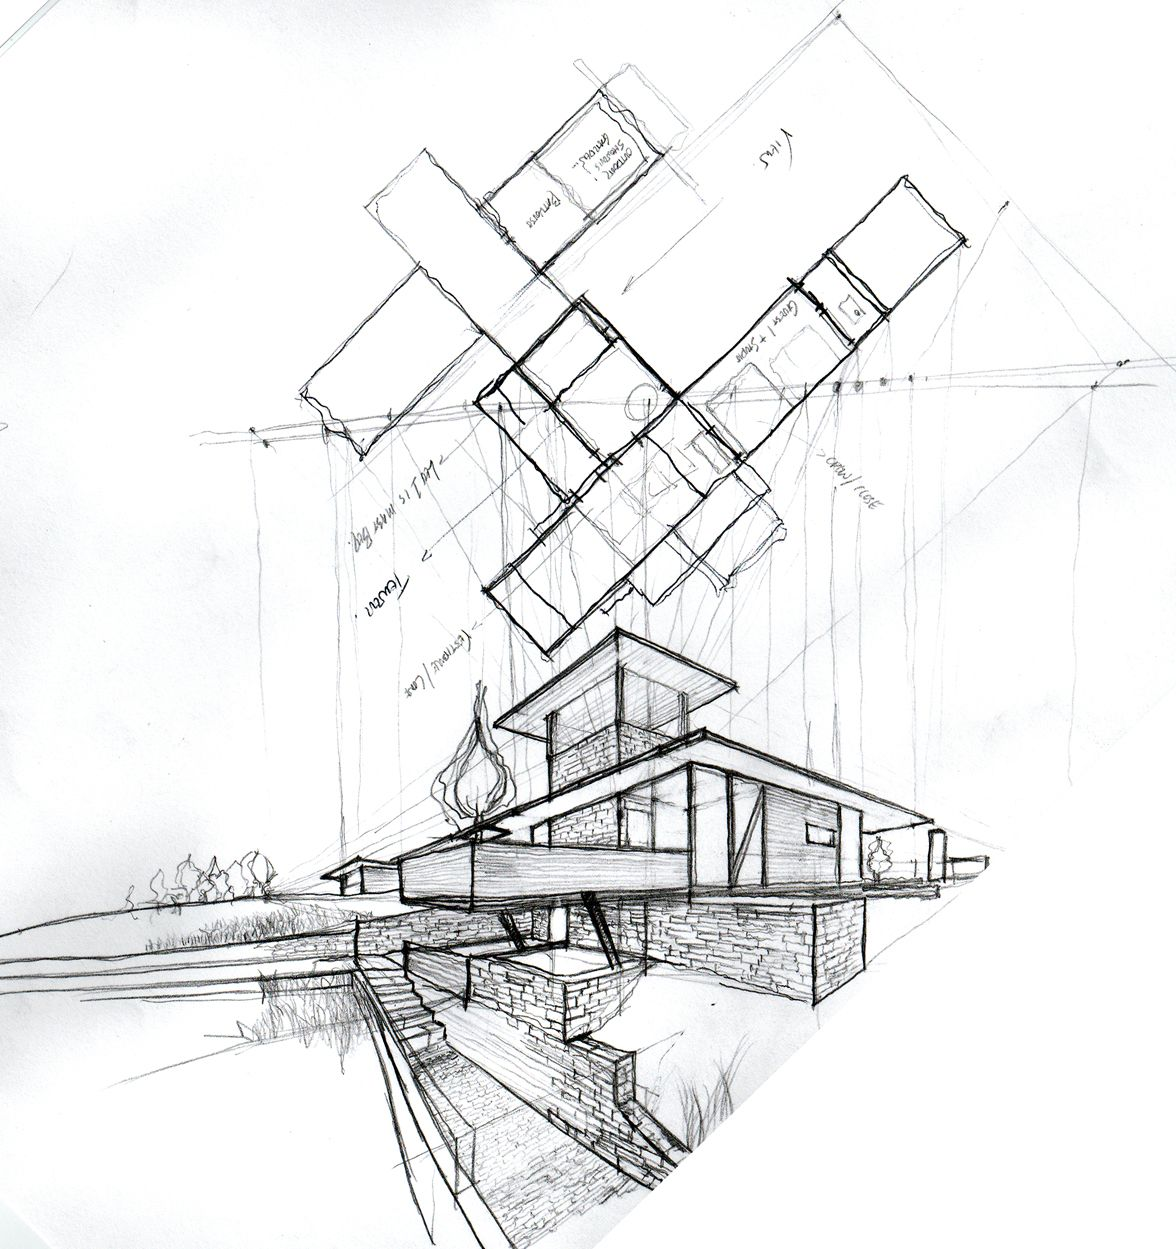 Architecture House Sketch architecture houses sketch 19846 hd wallpapers in architecture